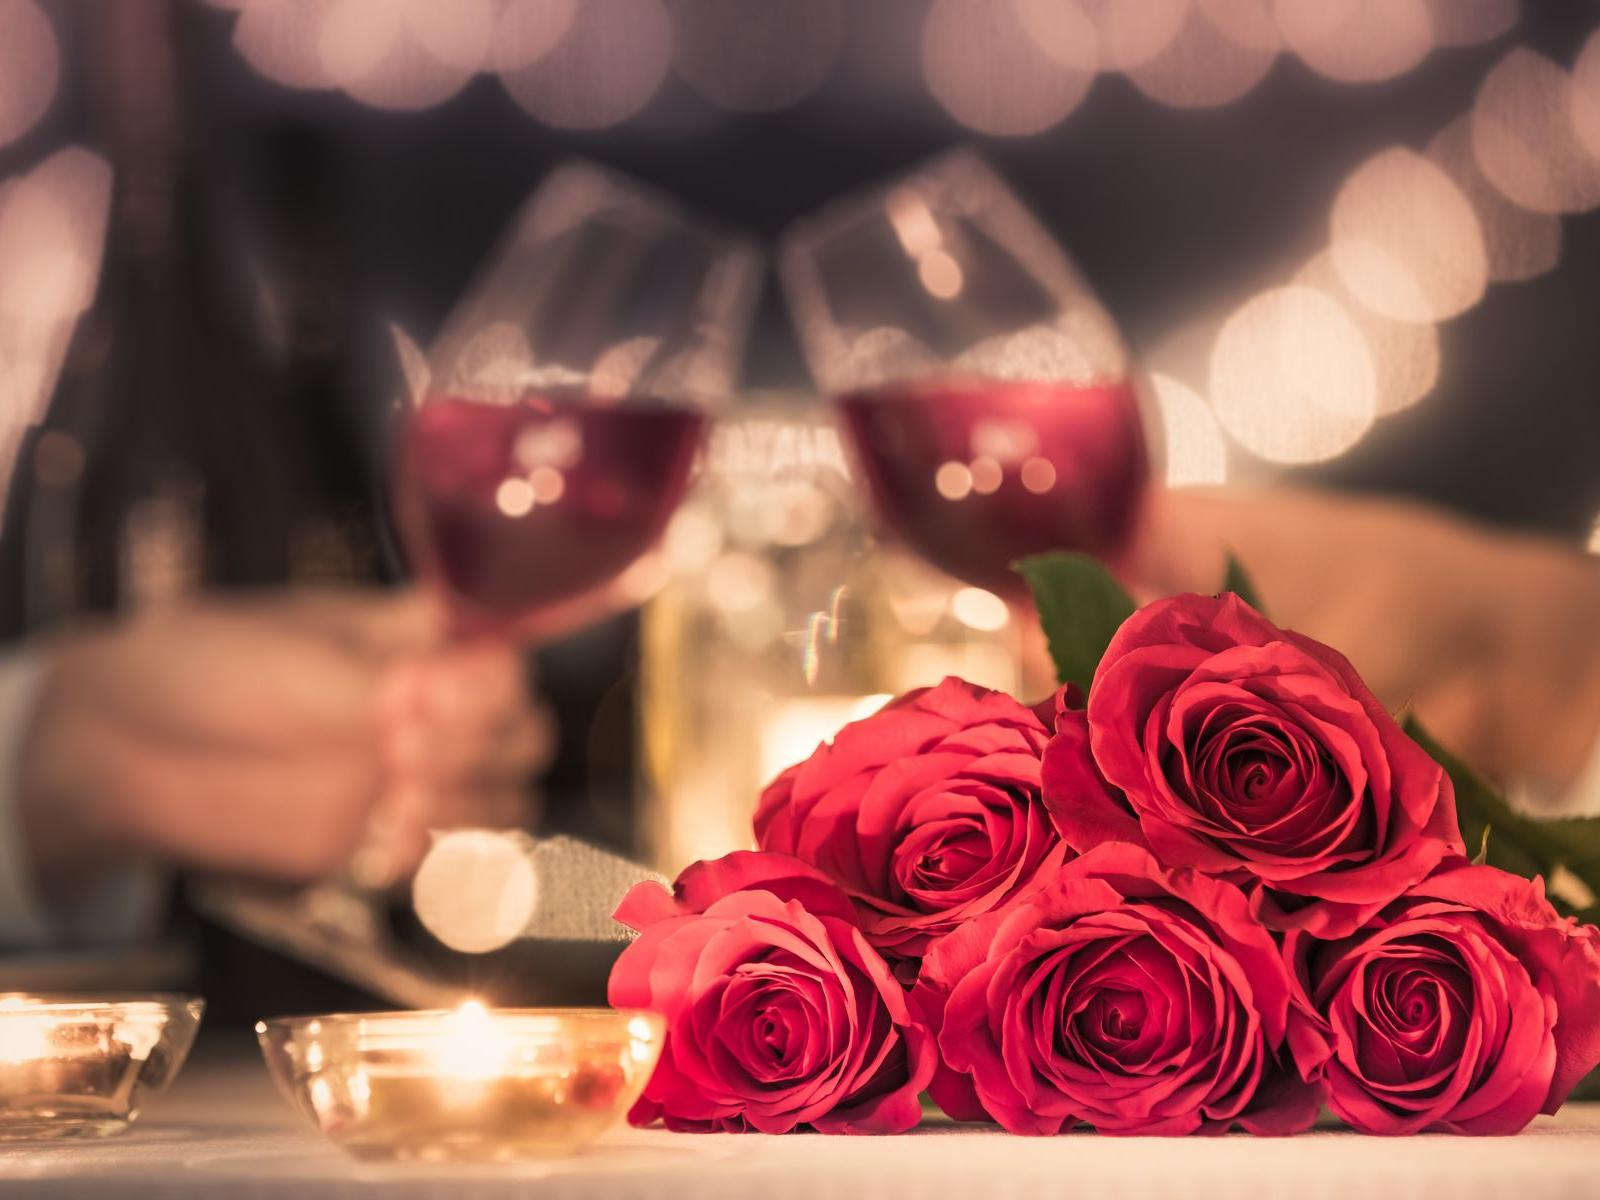 Bundle of roses with wine glasses clinking in the background.